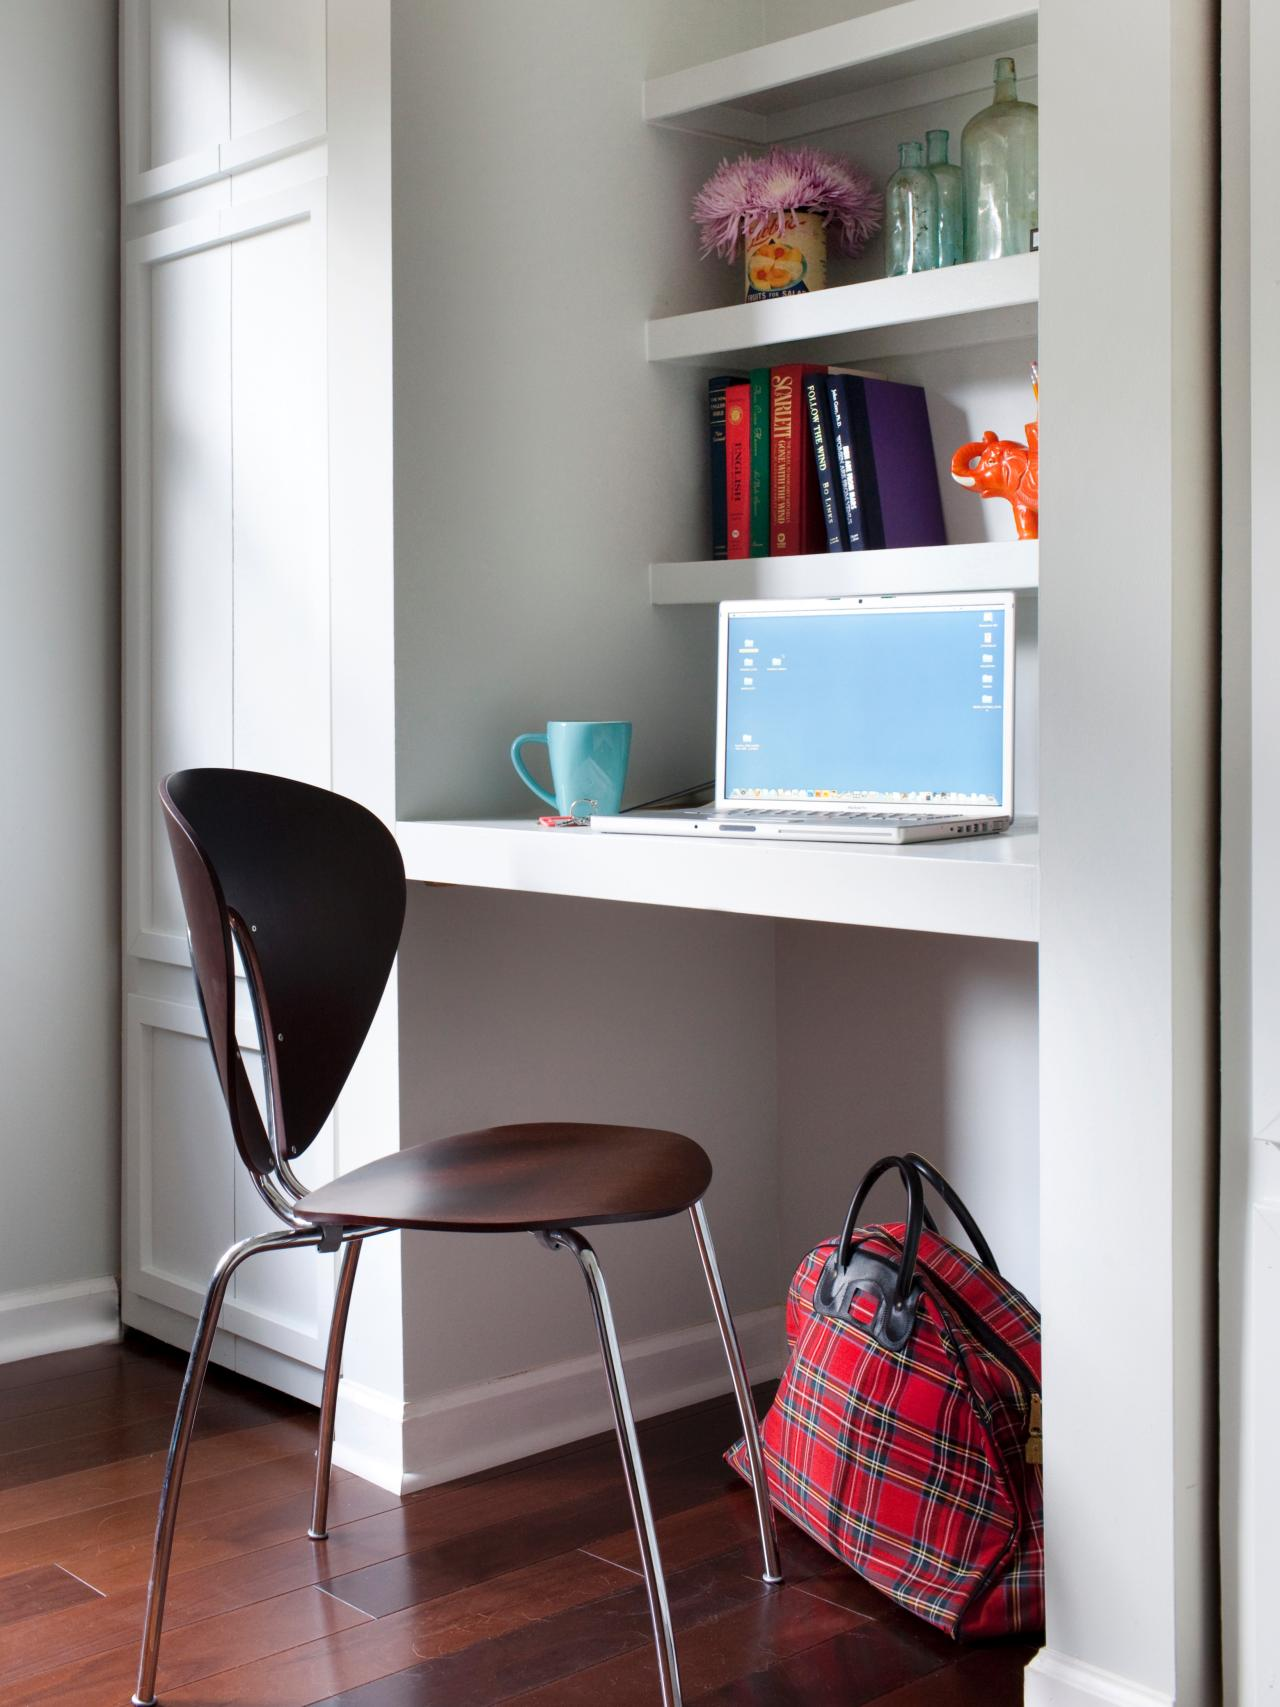 Home office nook. Source: www.hgtv.com